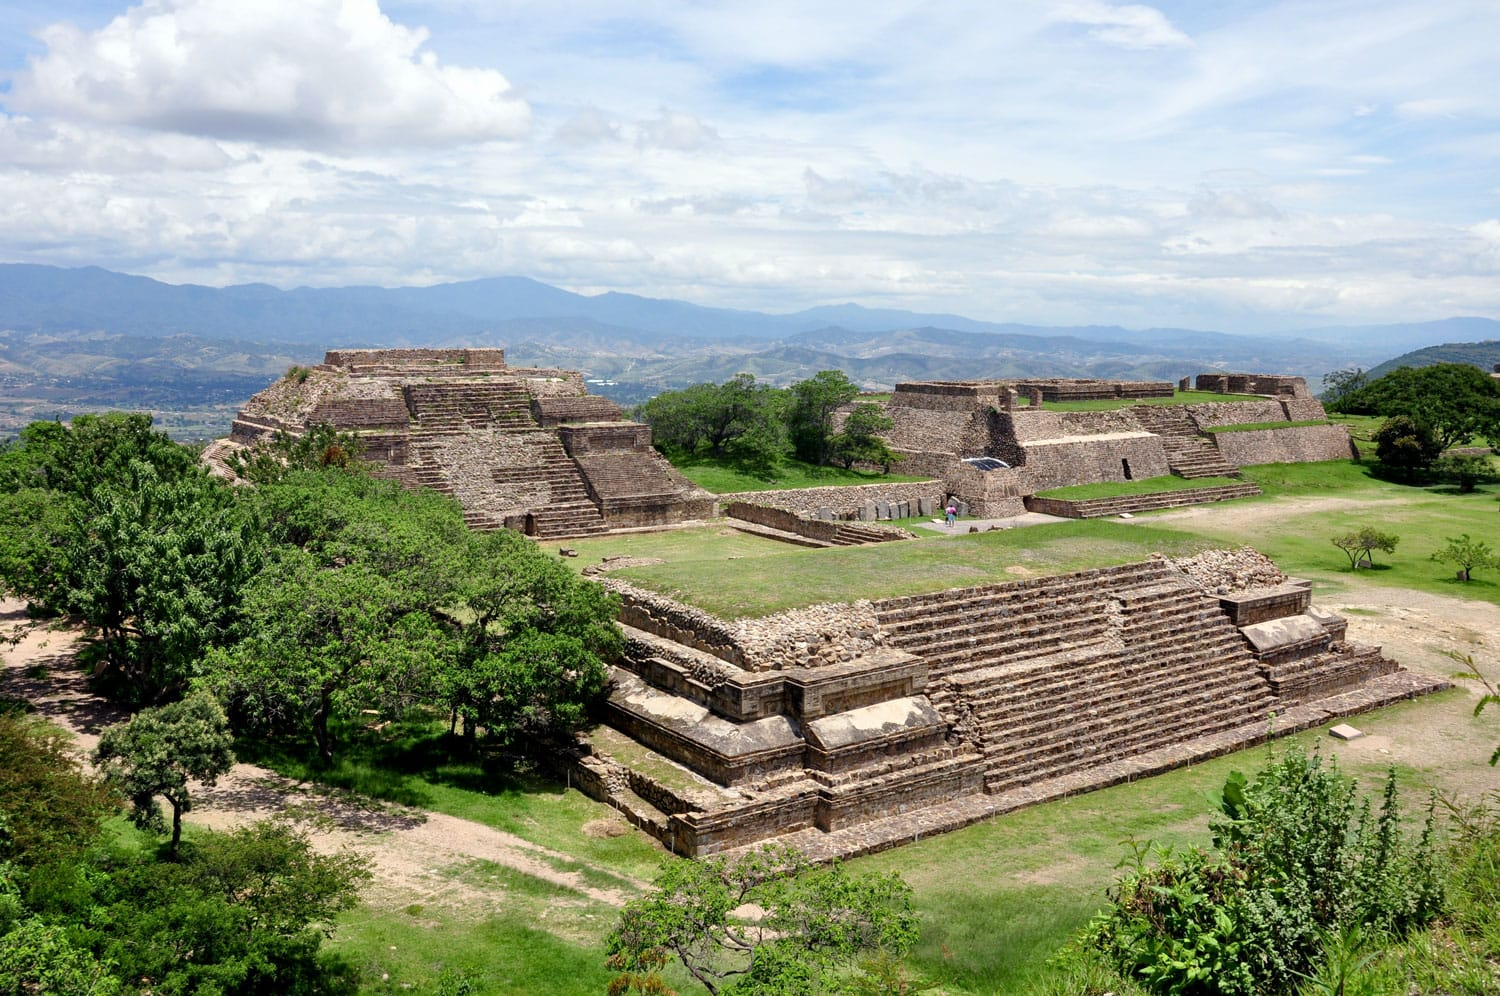 Monte Alban Site in Oaxaca, Mexico